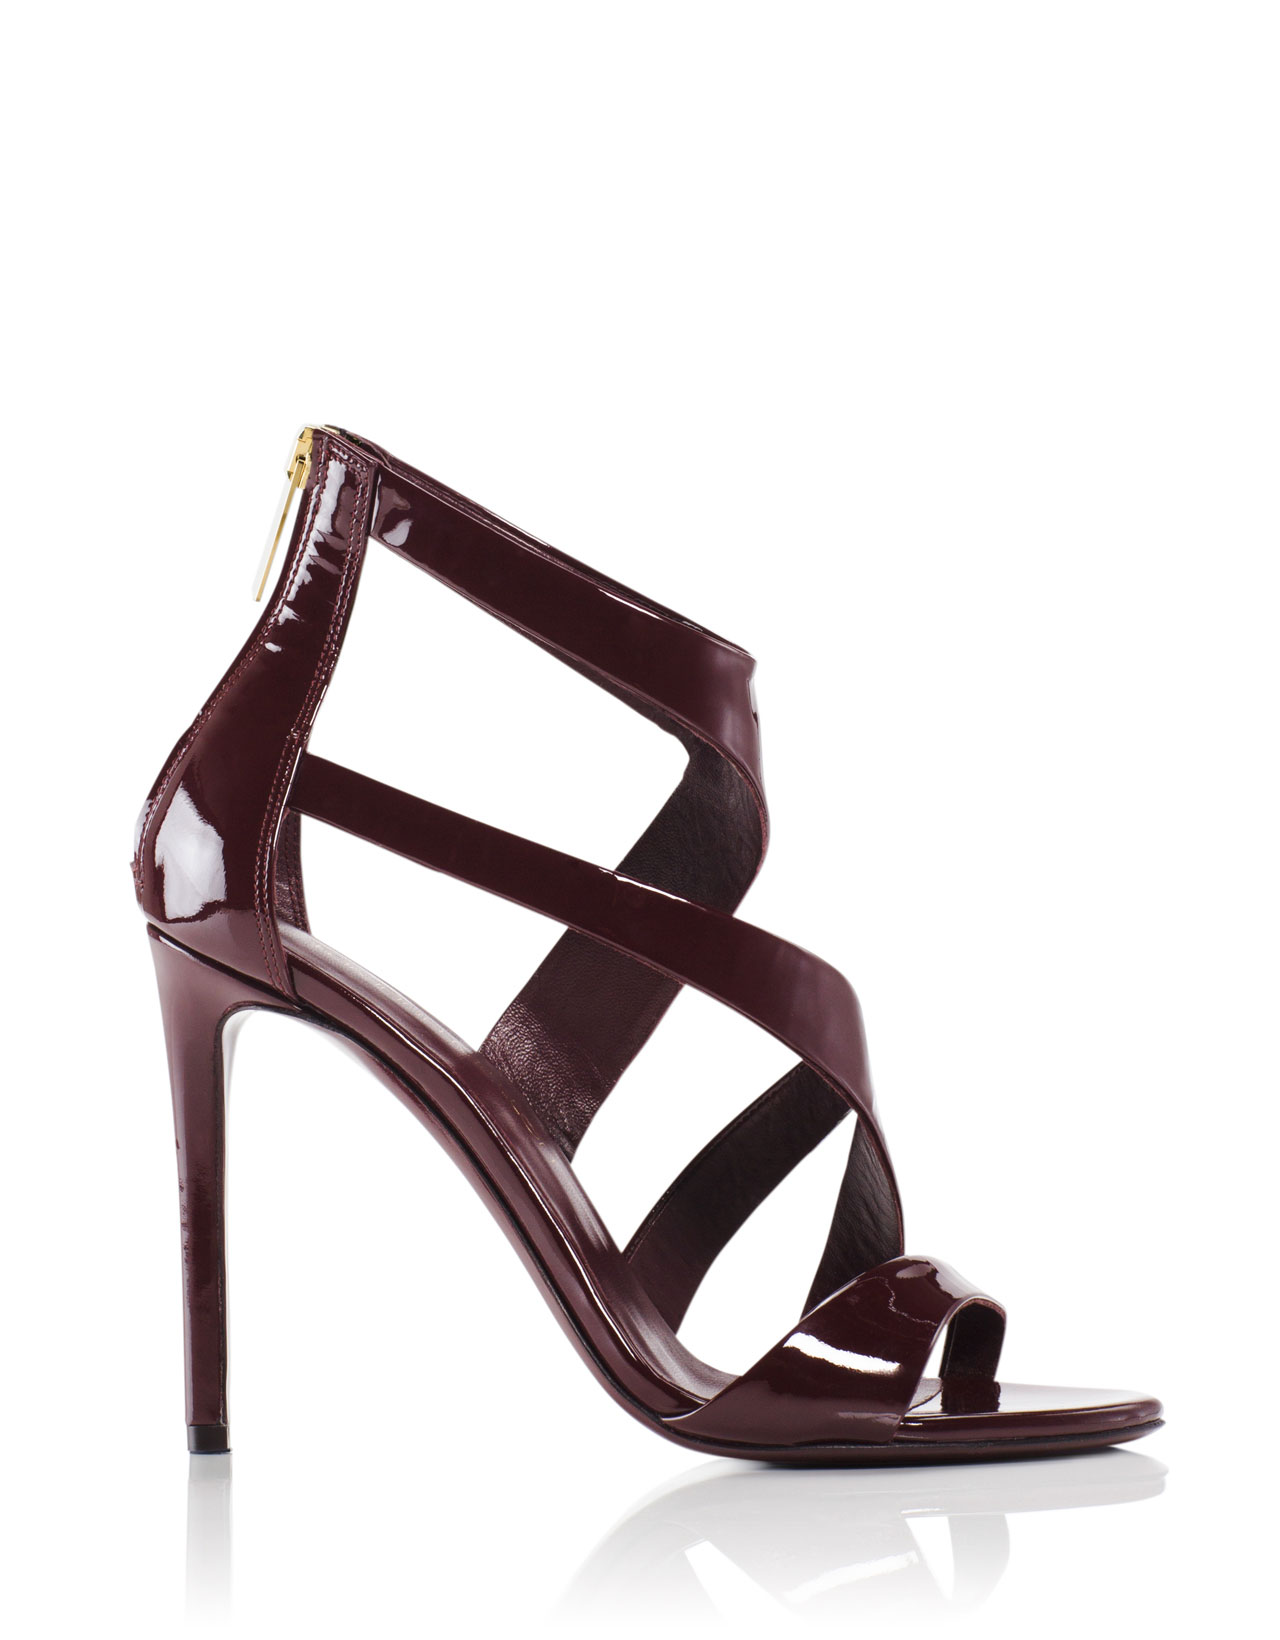 d3f362bd63f Tamara Mellon Tiger Burgundy Patent Sandals 105MM Heels US 6.5 EUR 36.5  795